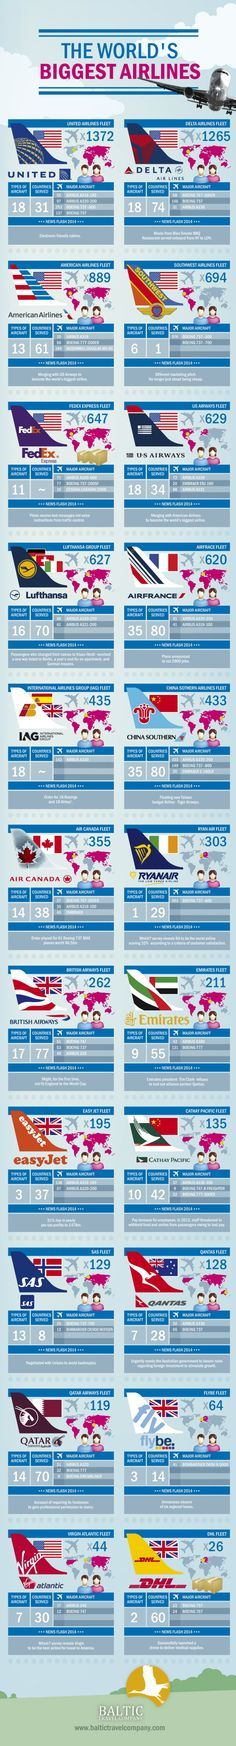 22 of the World's Biggest Airlines Compared